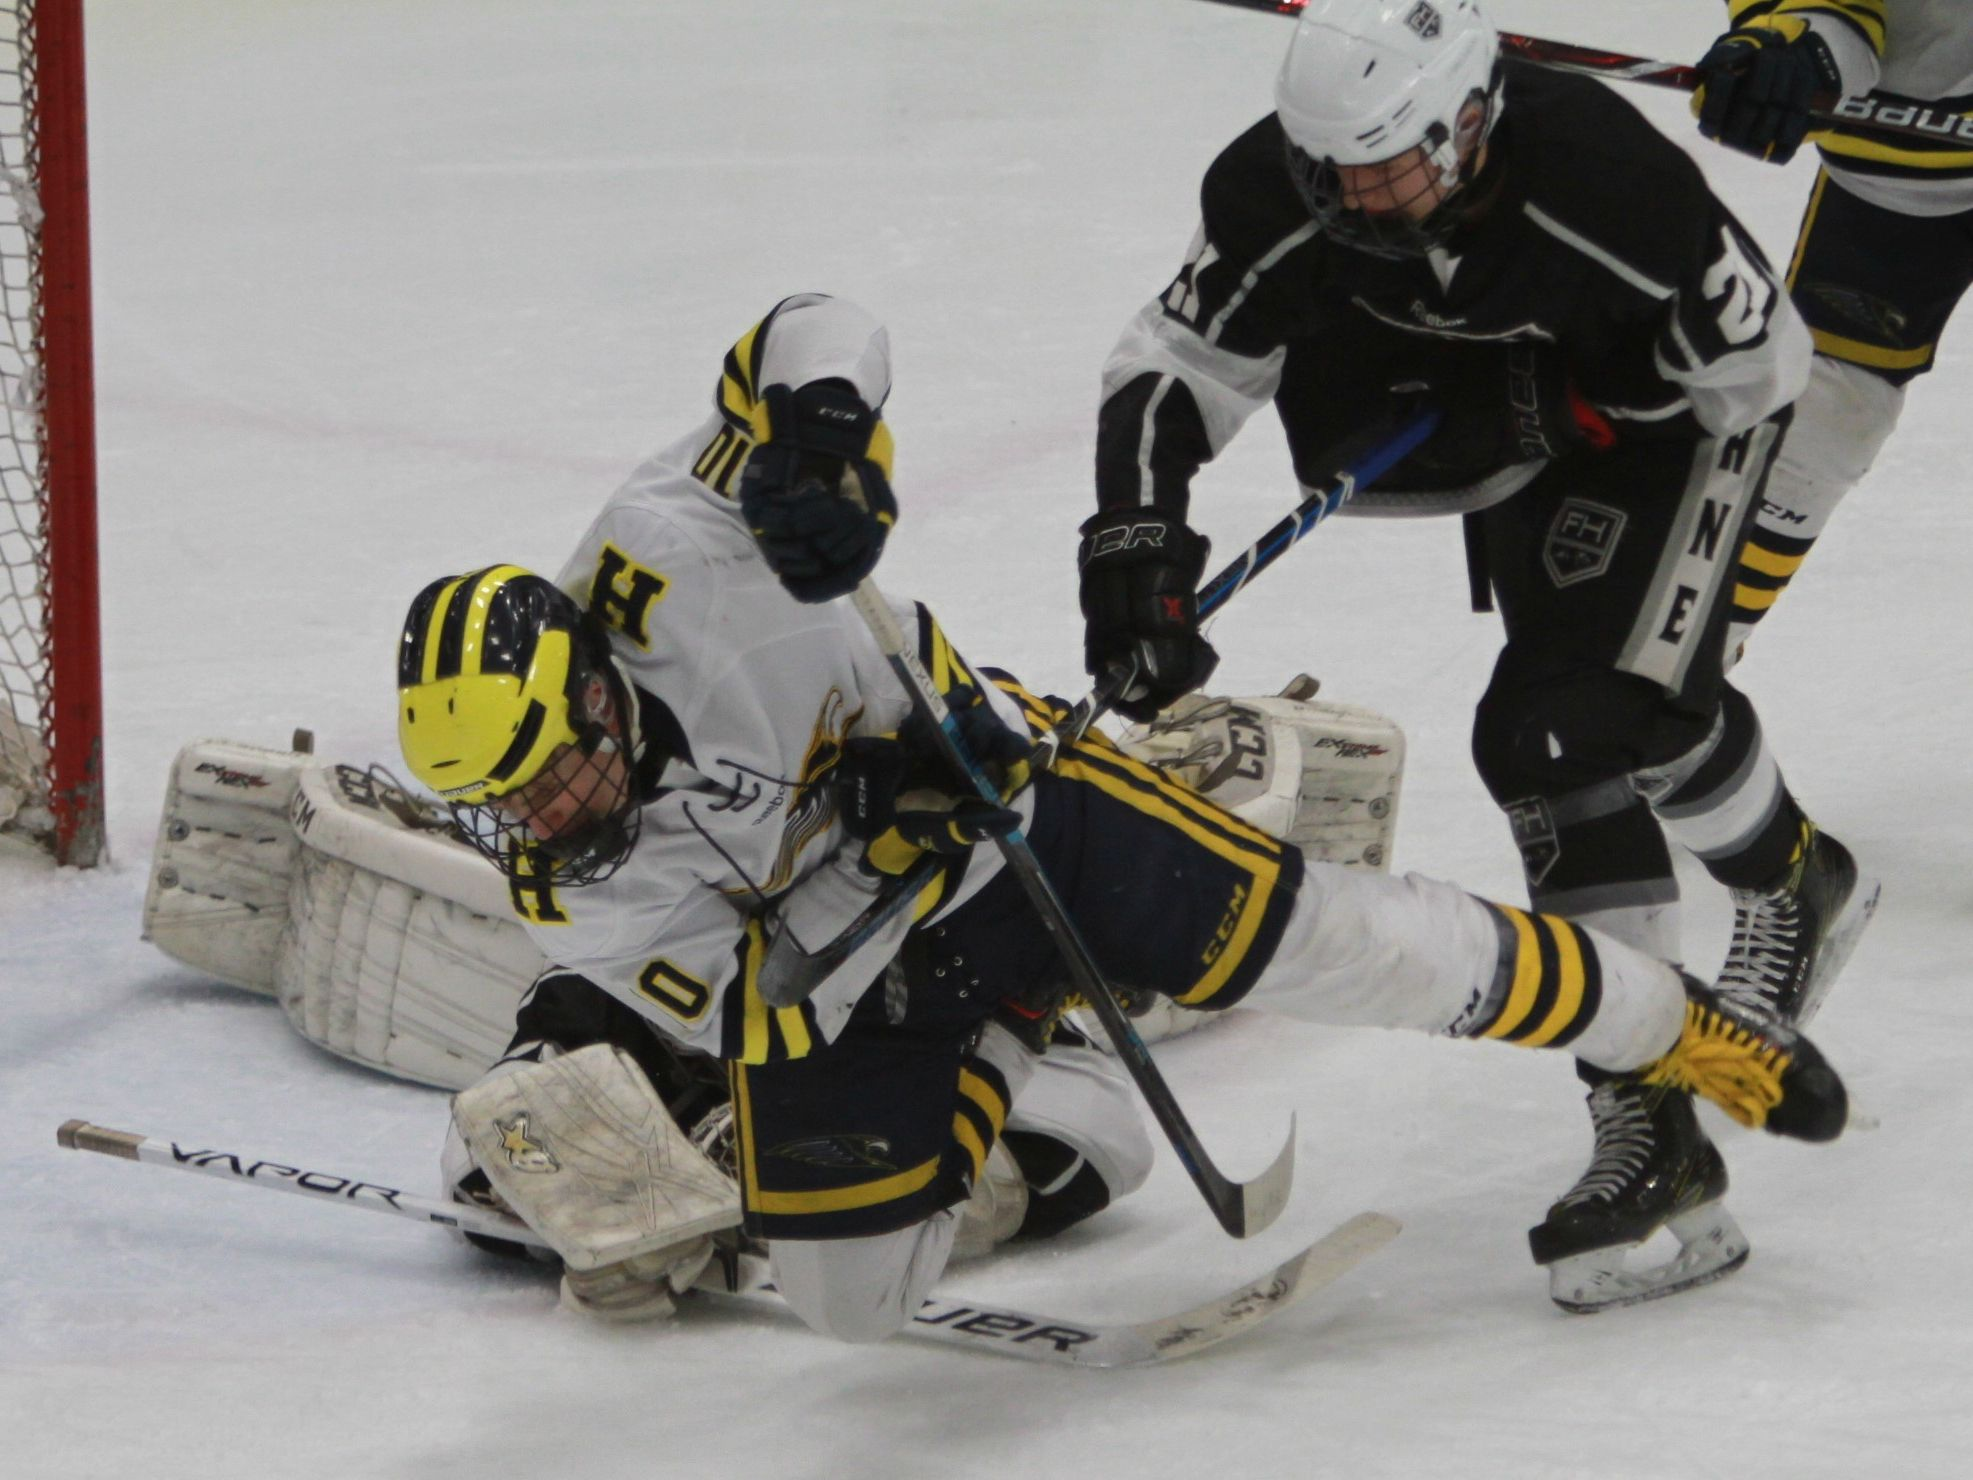 Hartland's Adam Pietila goes to the ice while trying to get to the puck around the Forest Hills Eastern net during a 6-0 victory in the state Division 2 hockey quarterfinals in Flint on Tuesday, March 5, 2019.